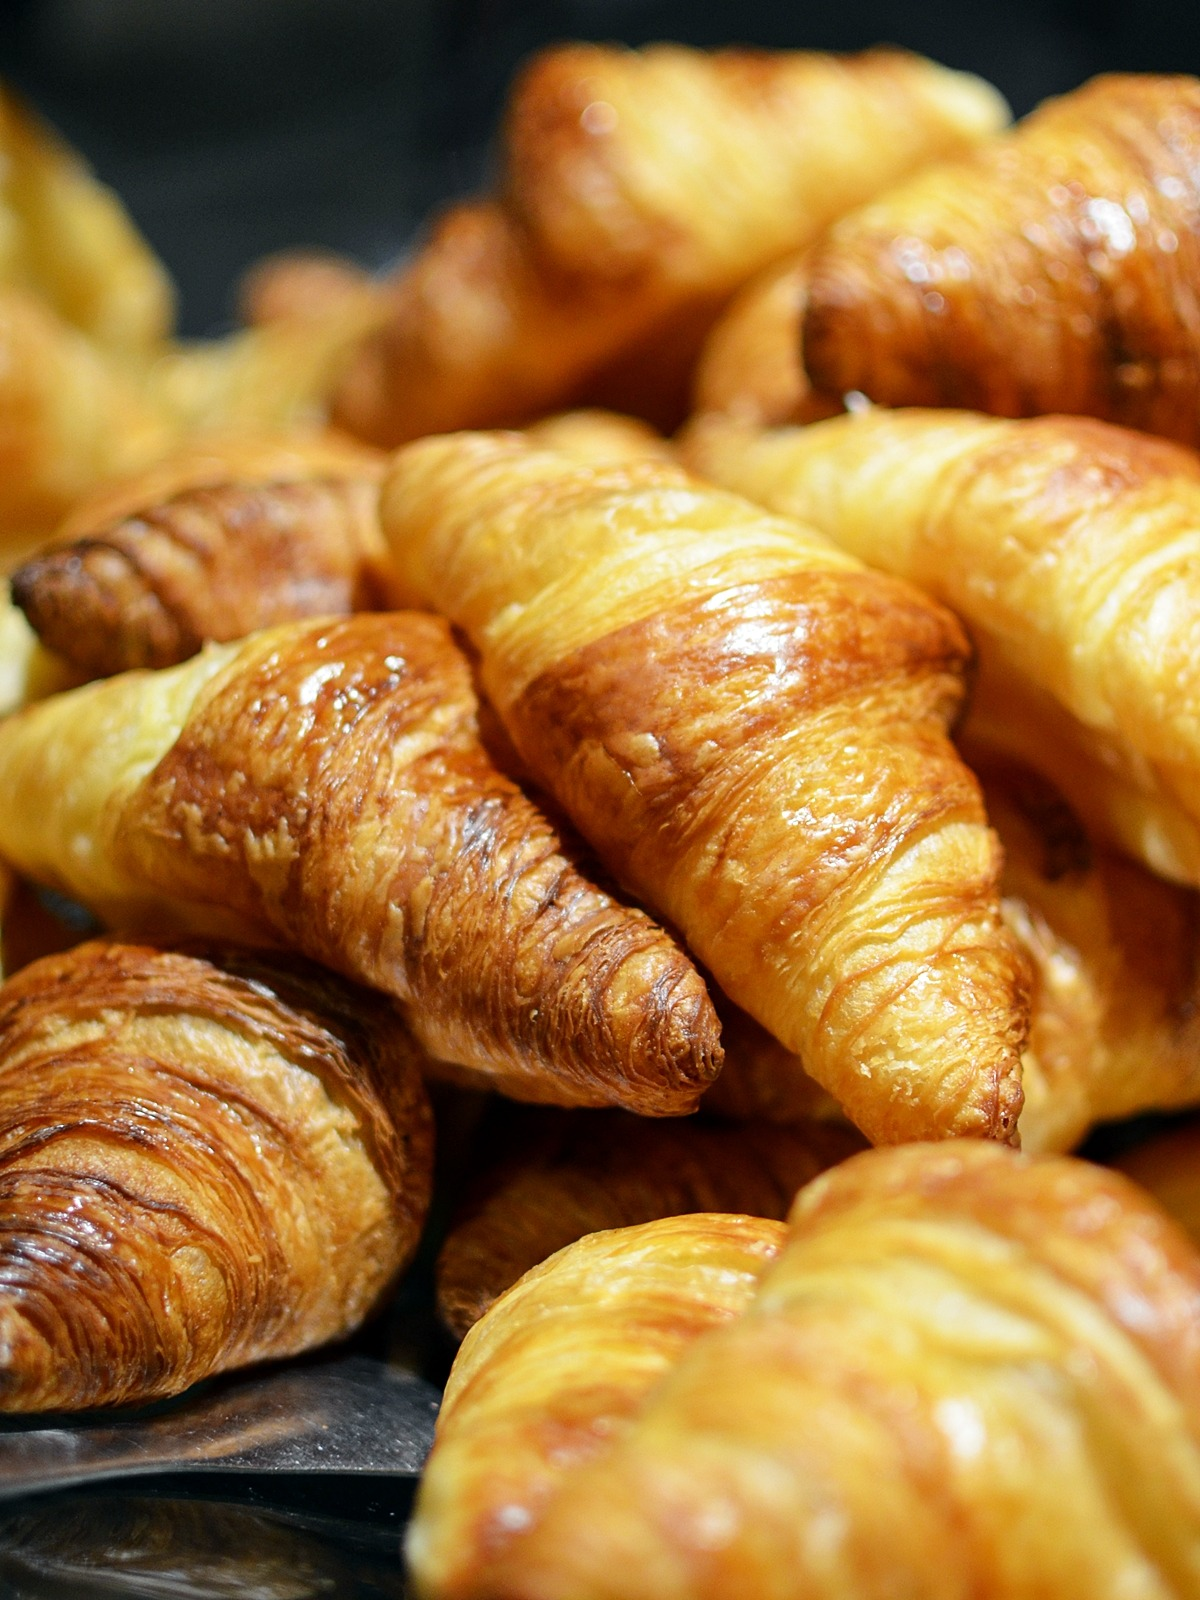 Free stock photo of bakery breakfast croissant for Cuisine francaise